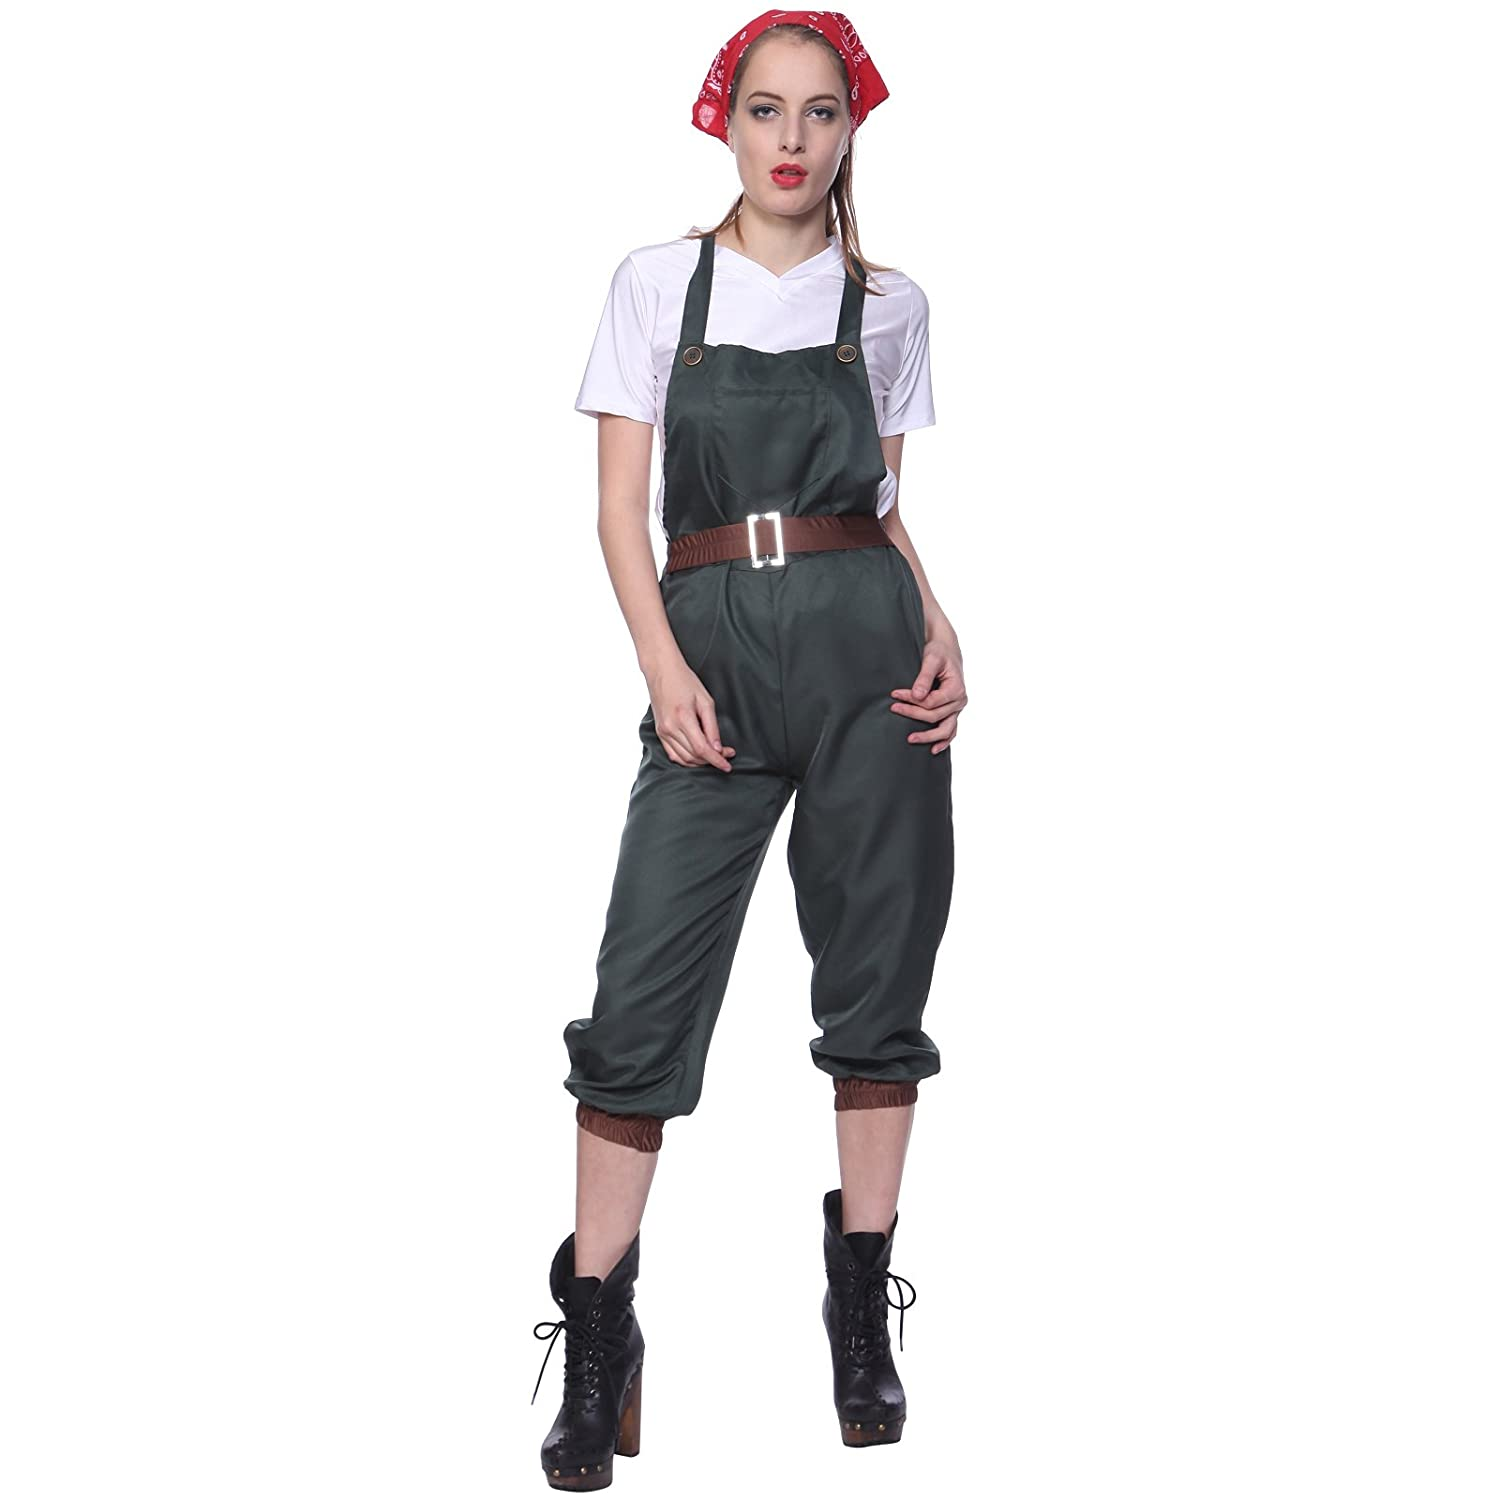 1940s Costumes- WW2, Nurse, Pinup, Rosie the Riveter WW2 1940s Land Girl Costume World War 2 Wartime Uniform Fancy Dress $14.99 AT vintagedancer.com